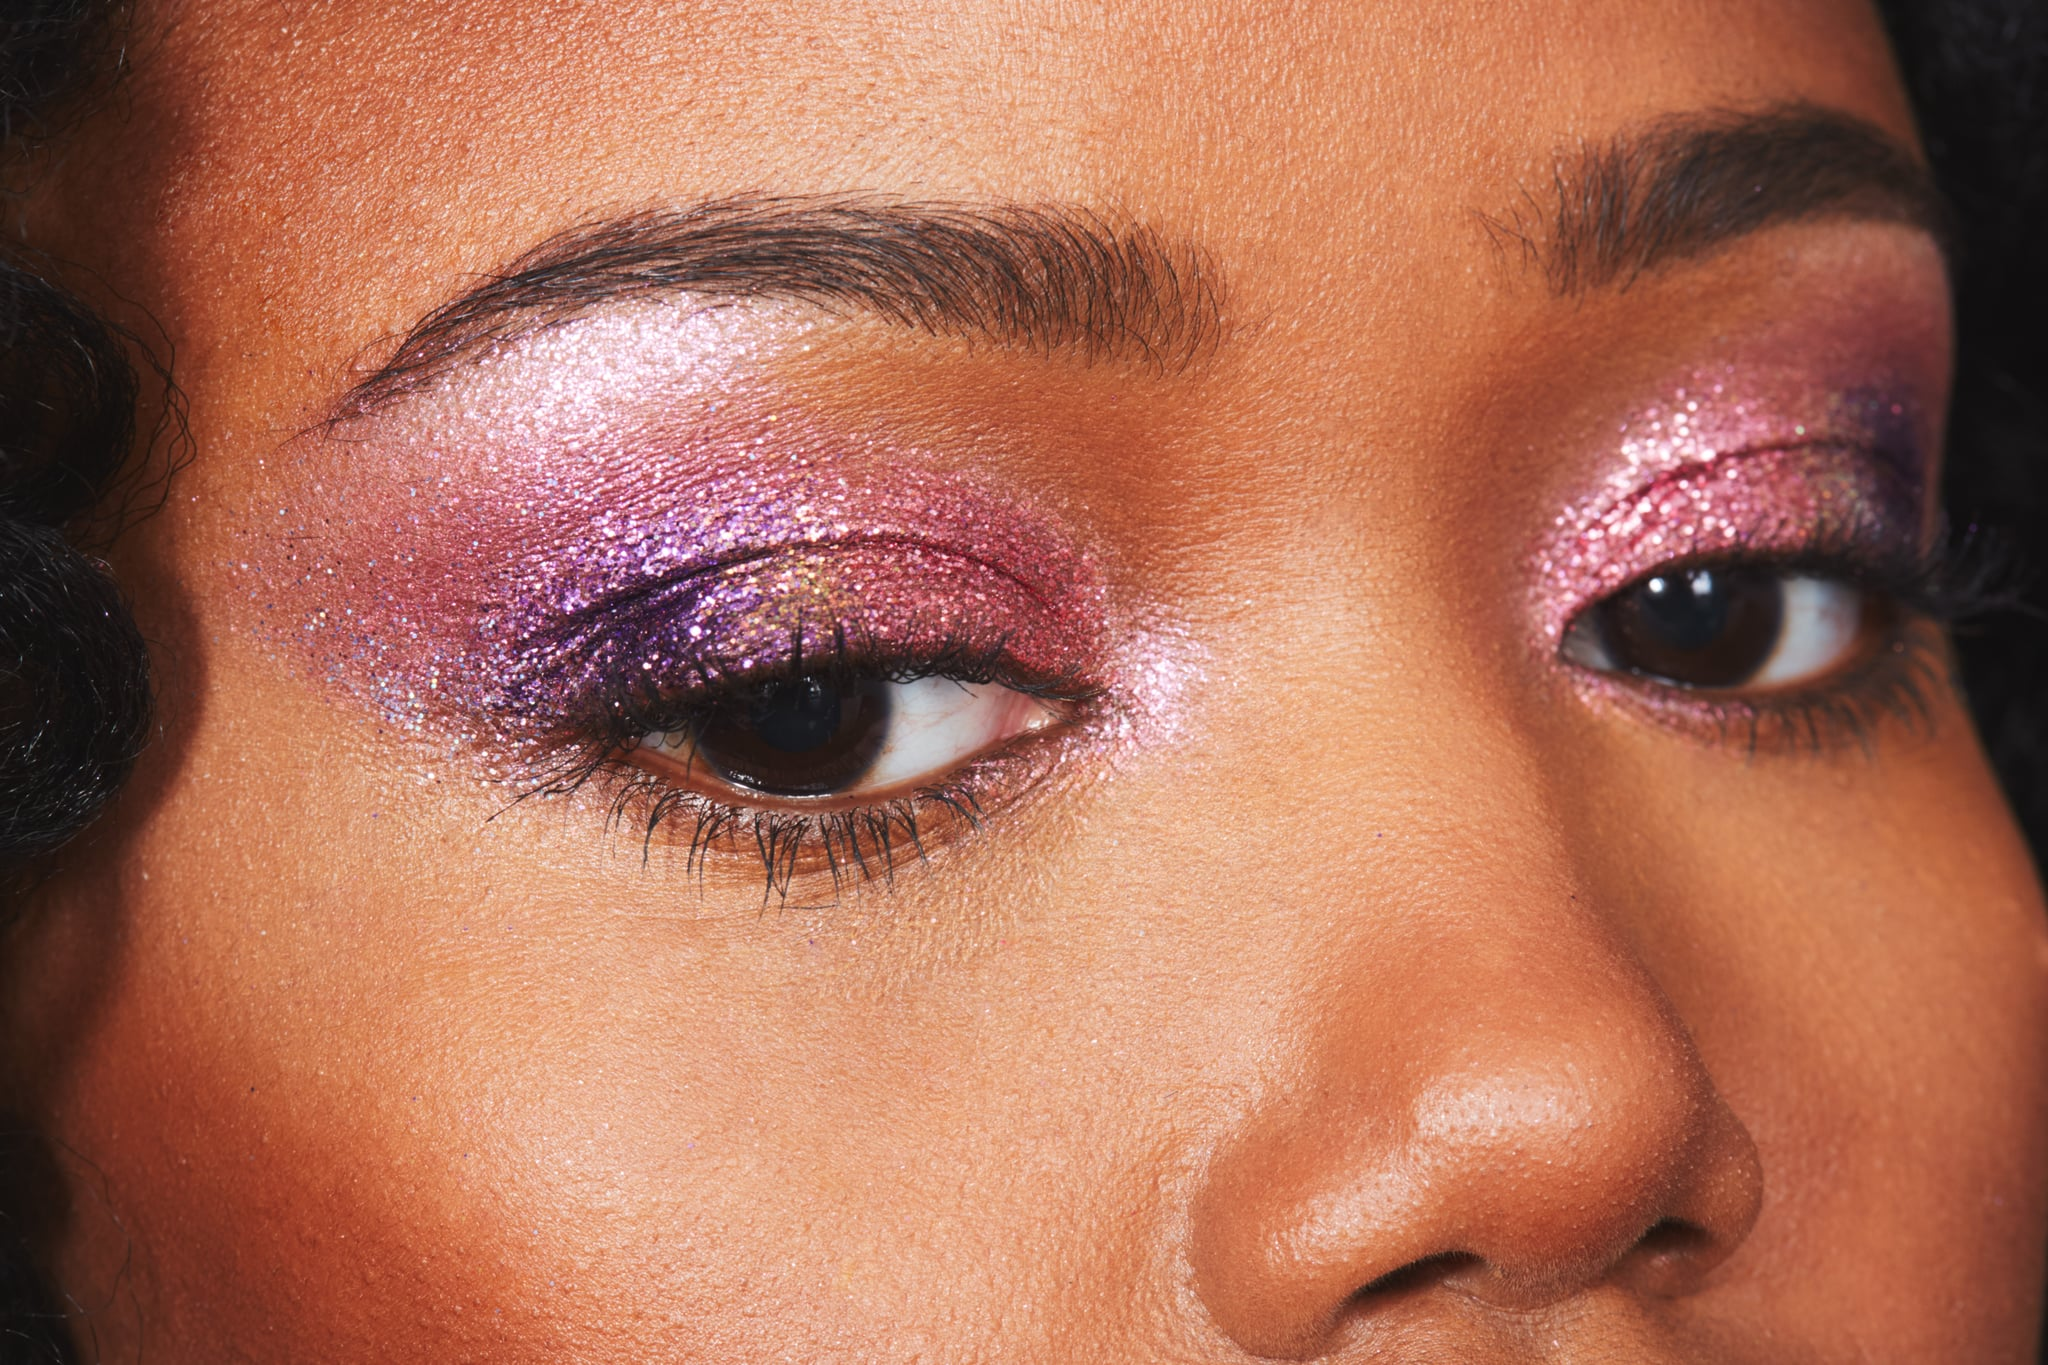 Glitter is not only annoying, it could be bad for the environment